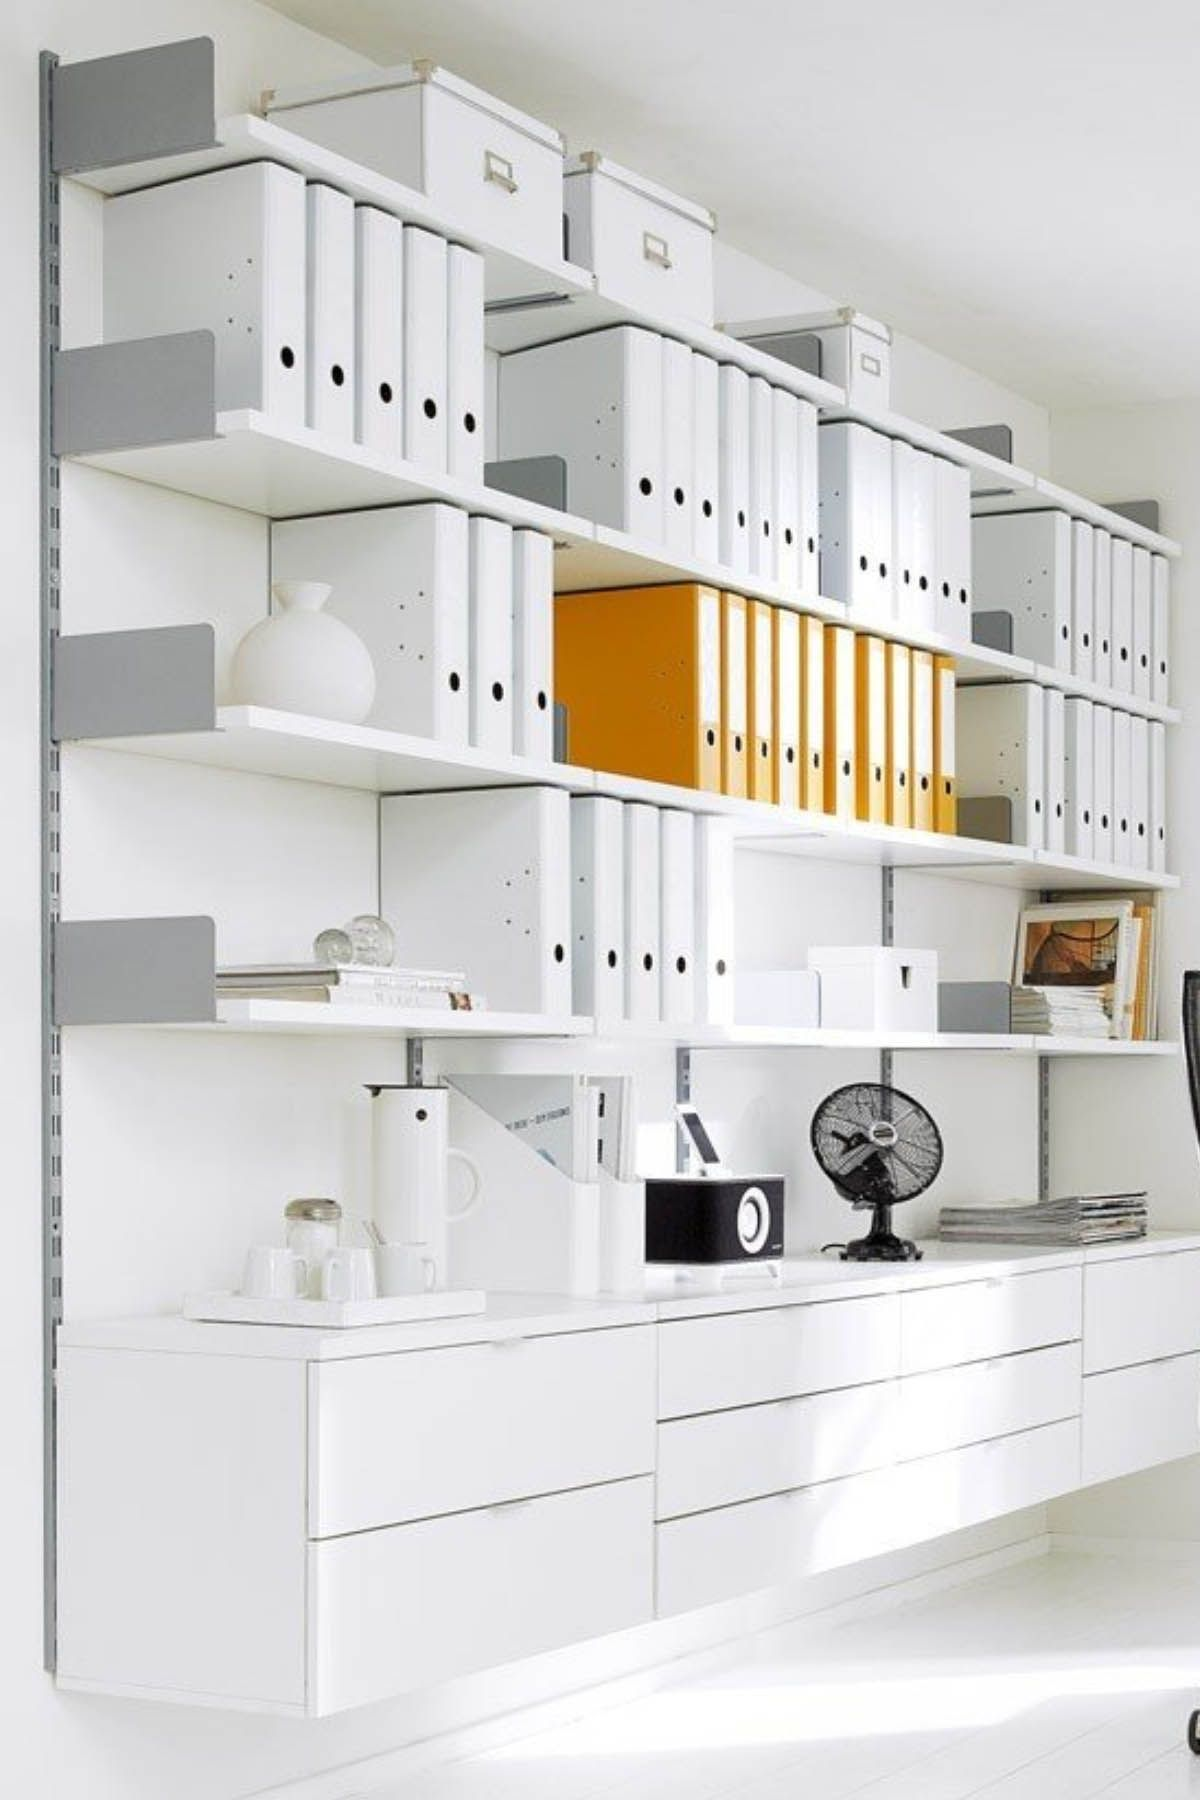 Pin by Regalraum on office storage ÷ | Pinterest | Office shelving ...